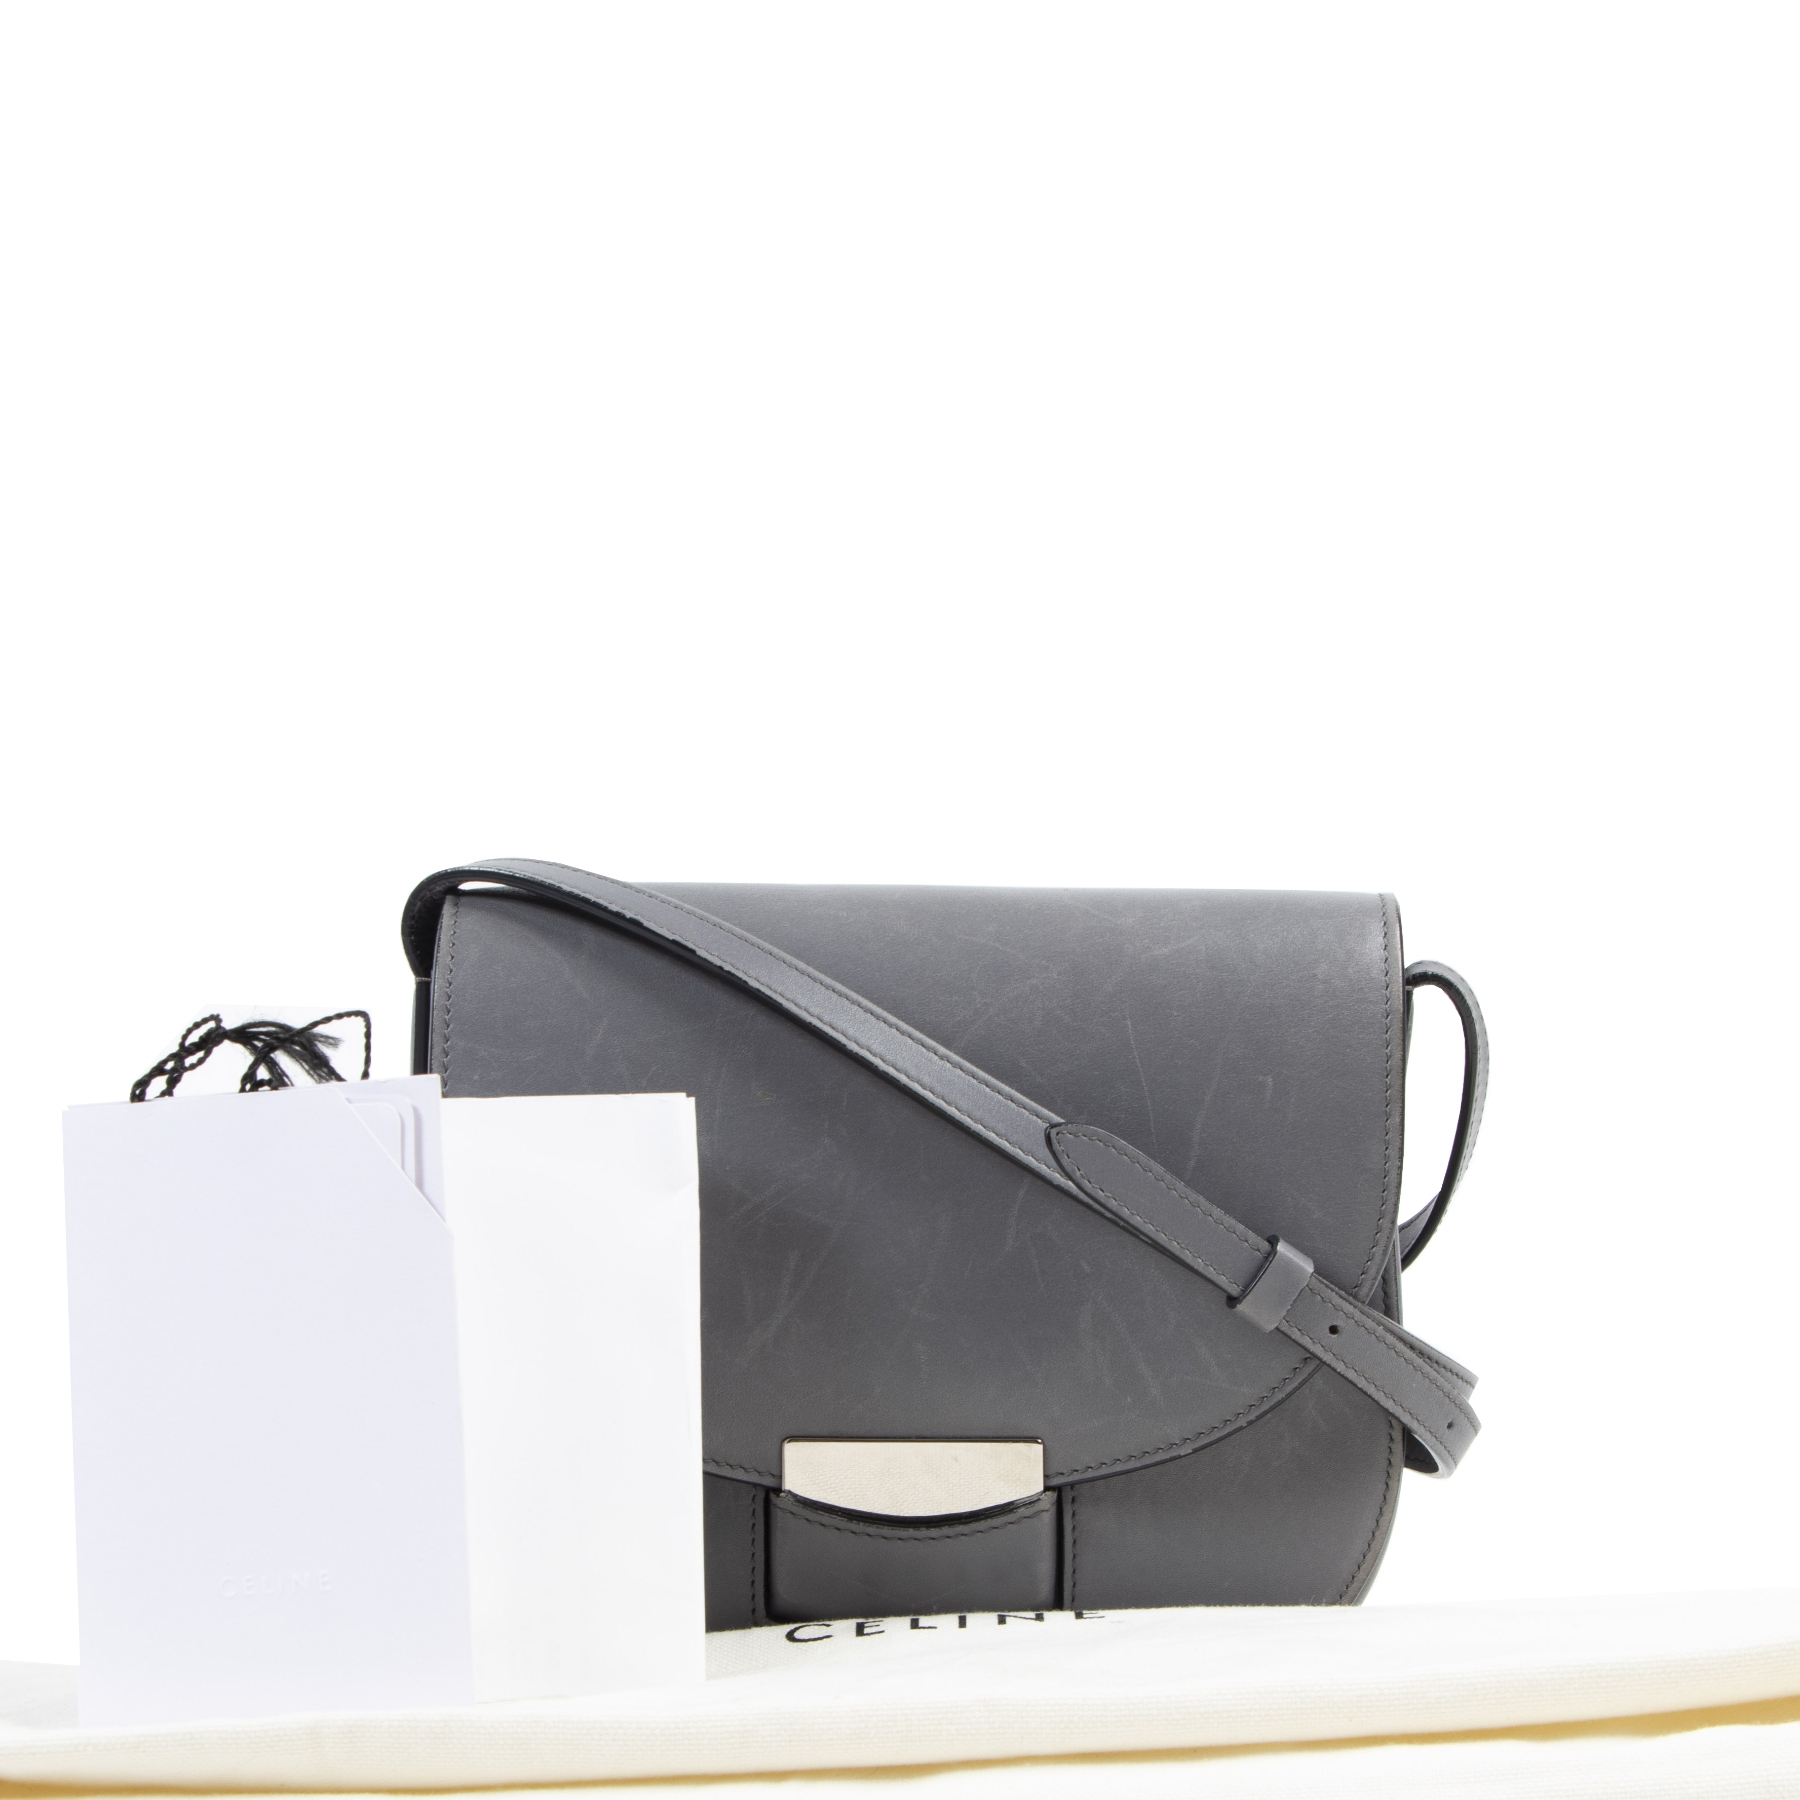 Authentique seconde-main vintage Céline Small Grey Trotteur Crossbody Bag achète en ligne webshop LabelLOV